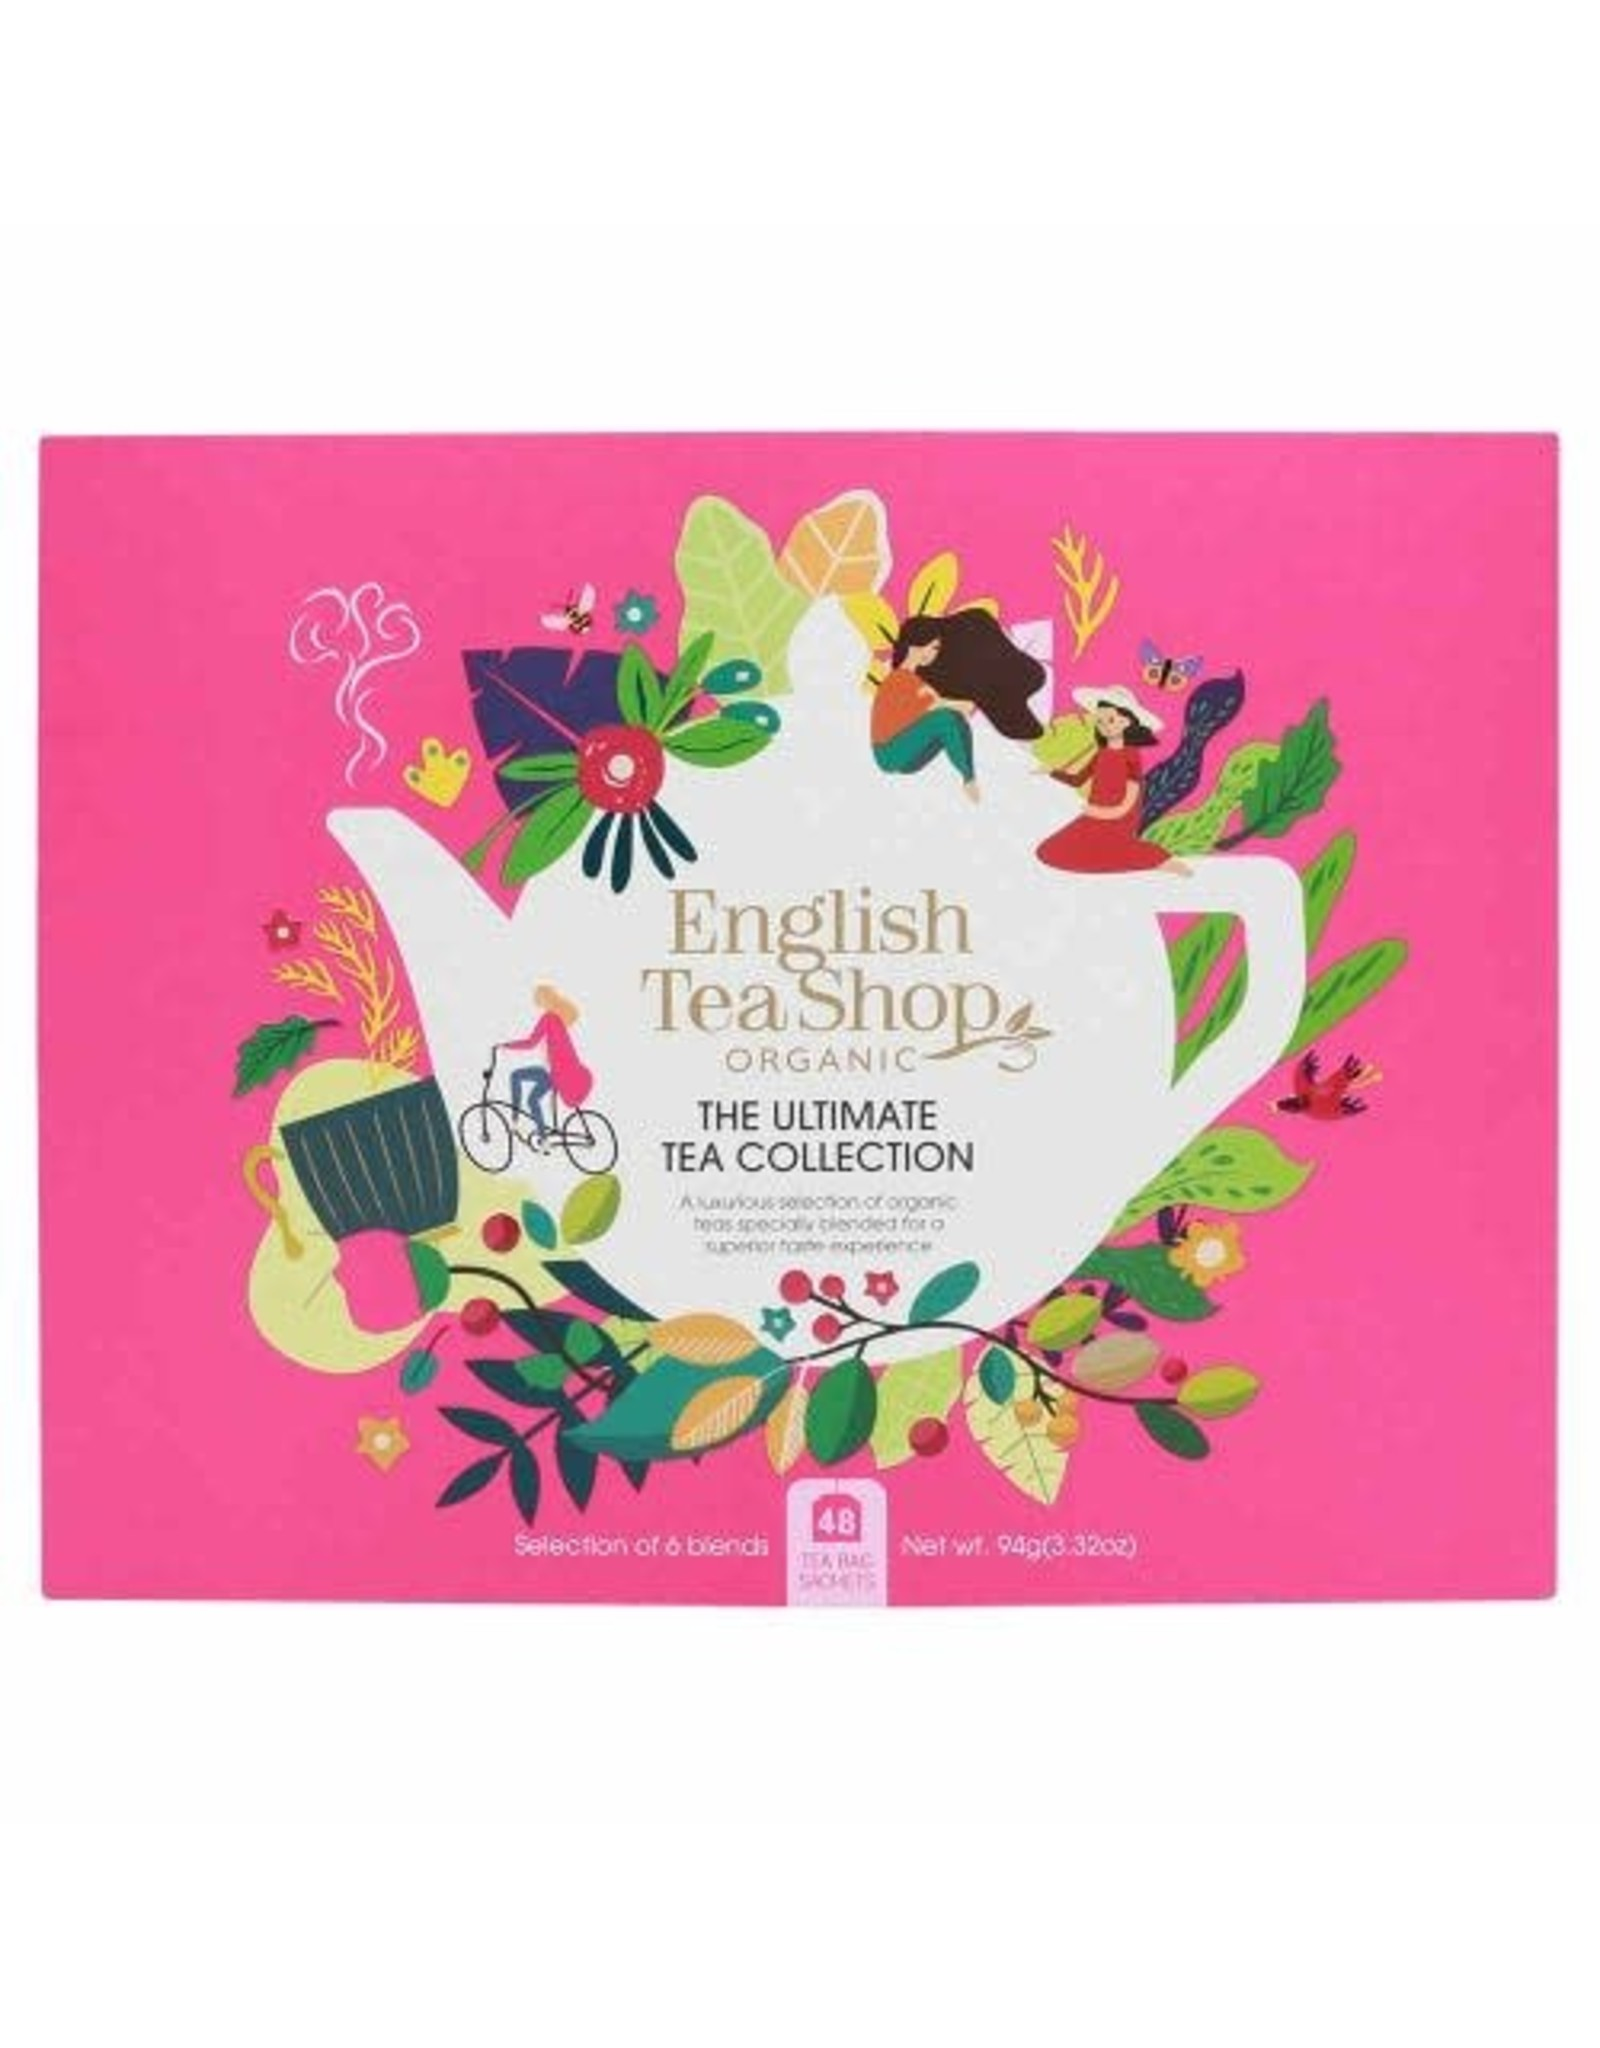 English Tea Shop Gift Pack The Ultimate Tea Collection Pink 48 sachets